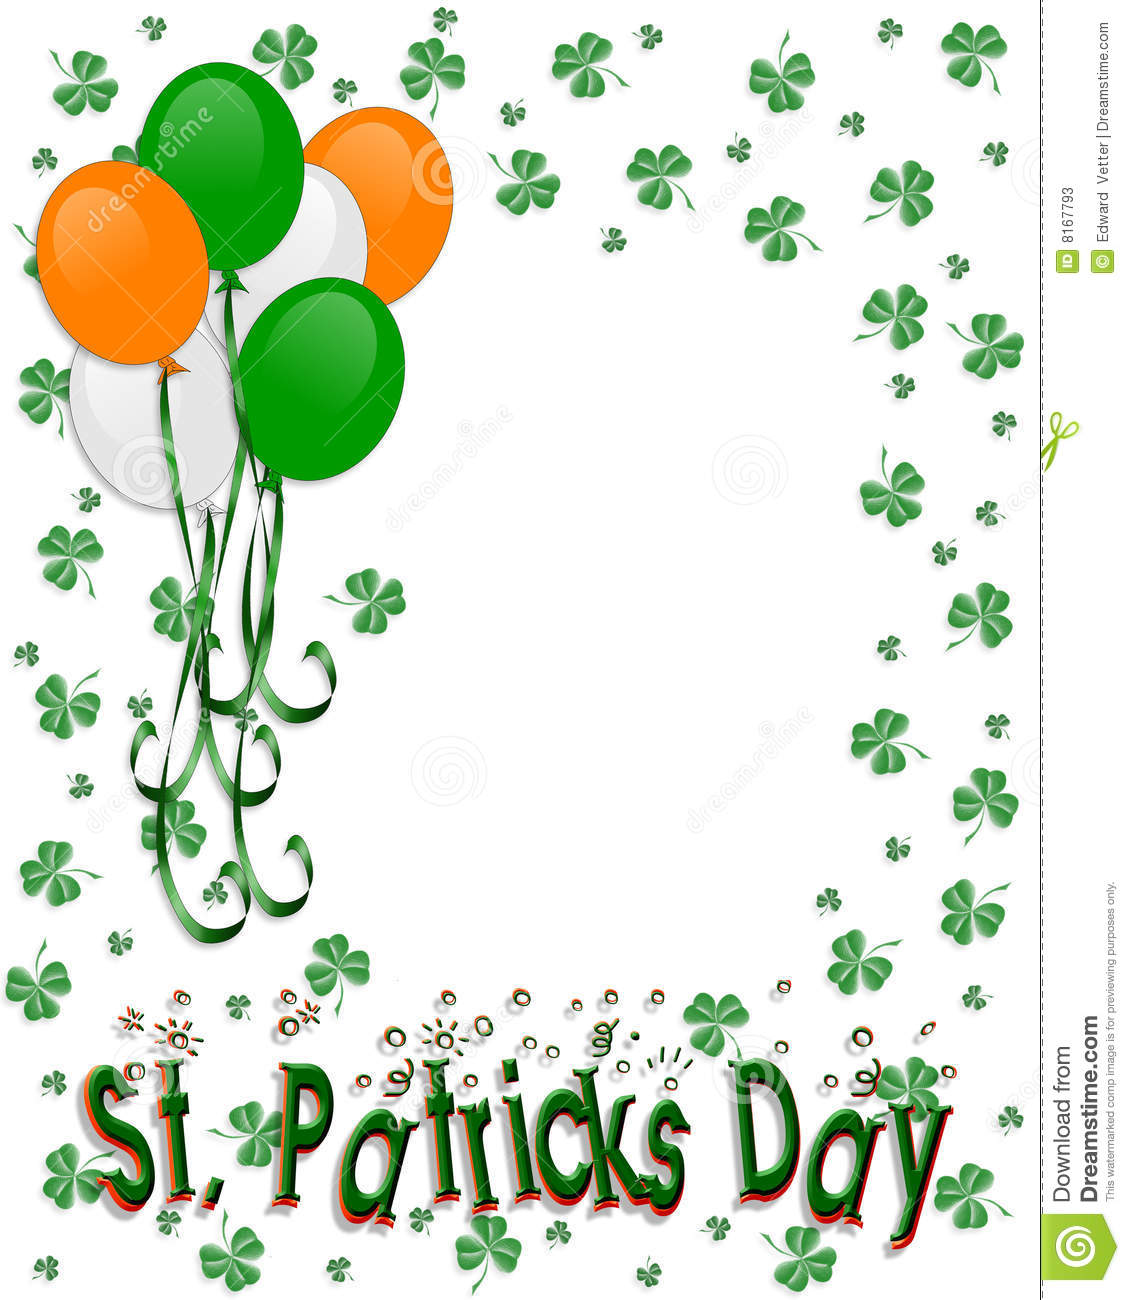 graphic about Free Printable Clipart for St Patrick's Day named St Patrick S Clipart No cost down load least difficult St Patrick S